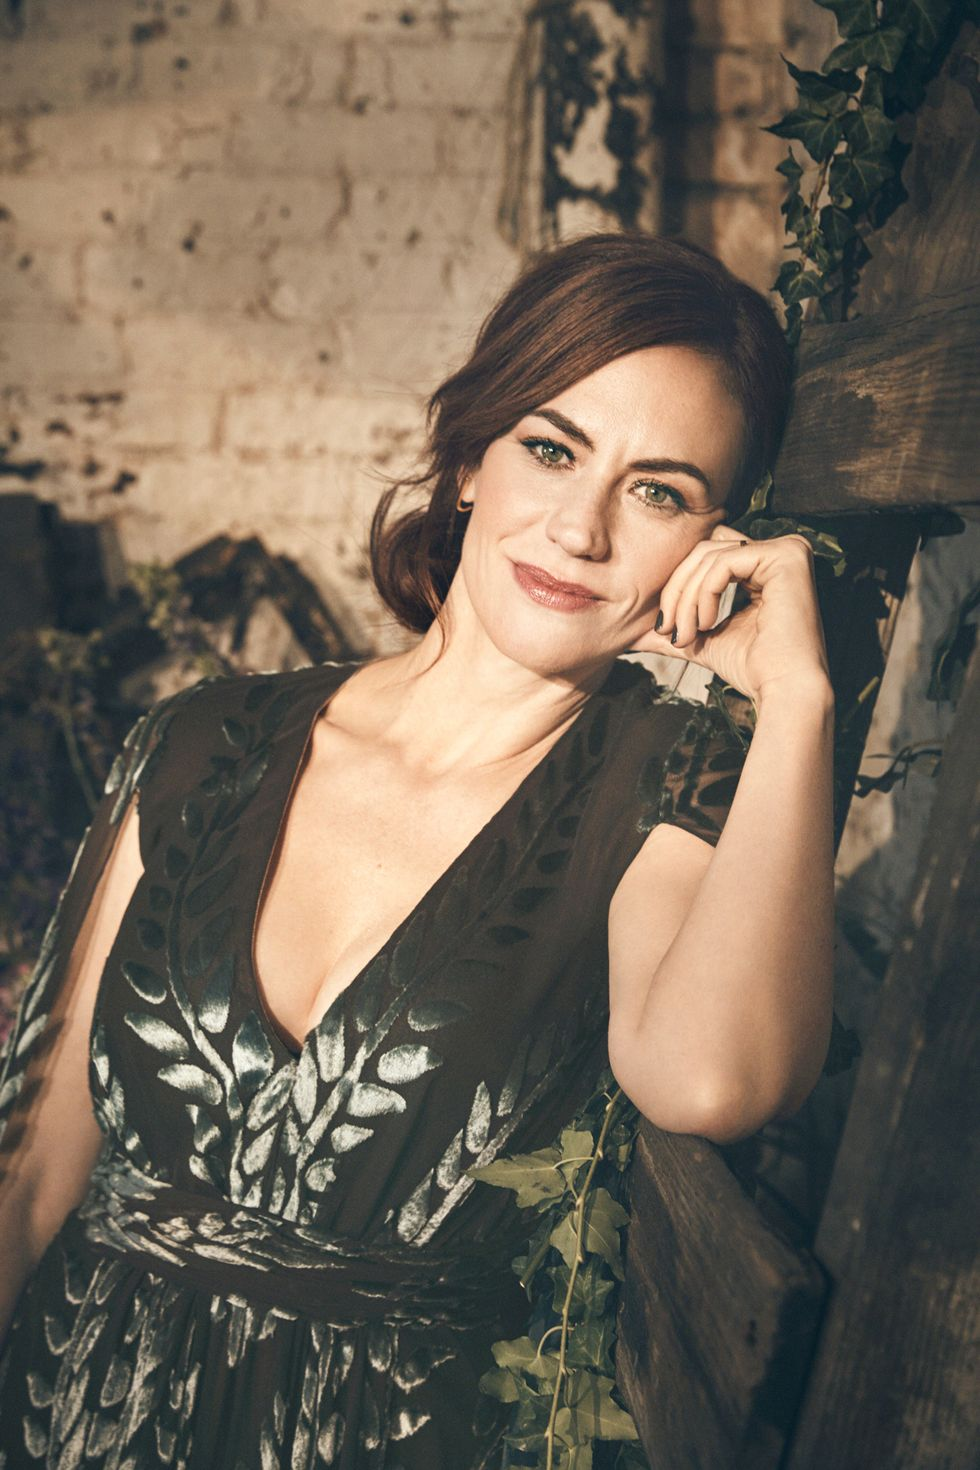 Closeup of Maggie Siff in a floral dress.